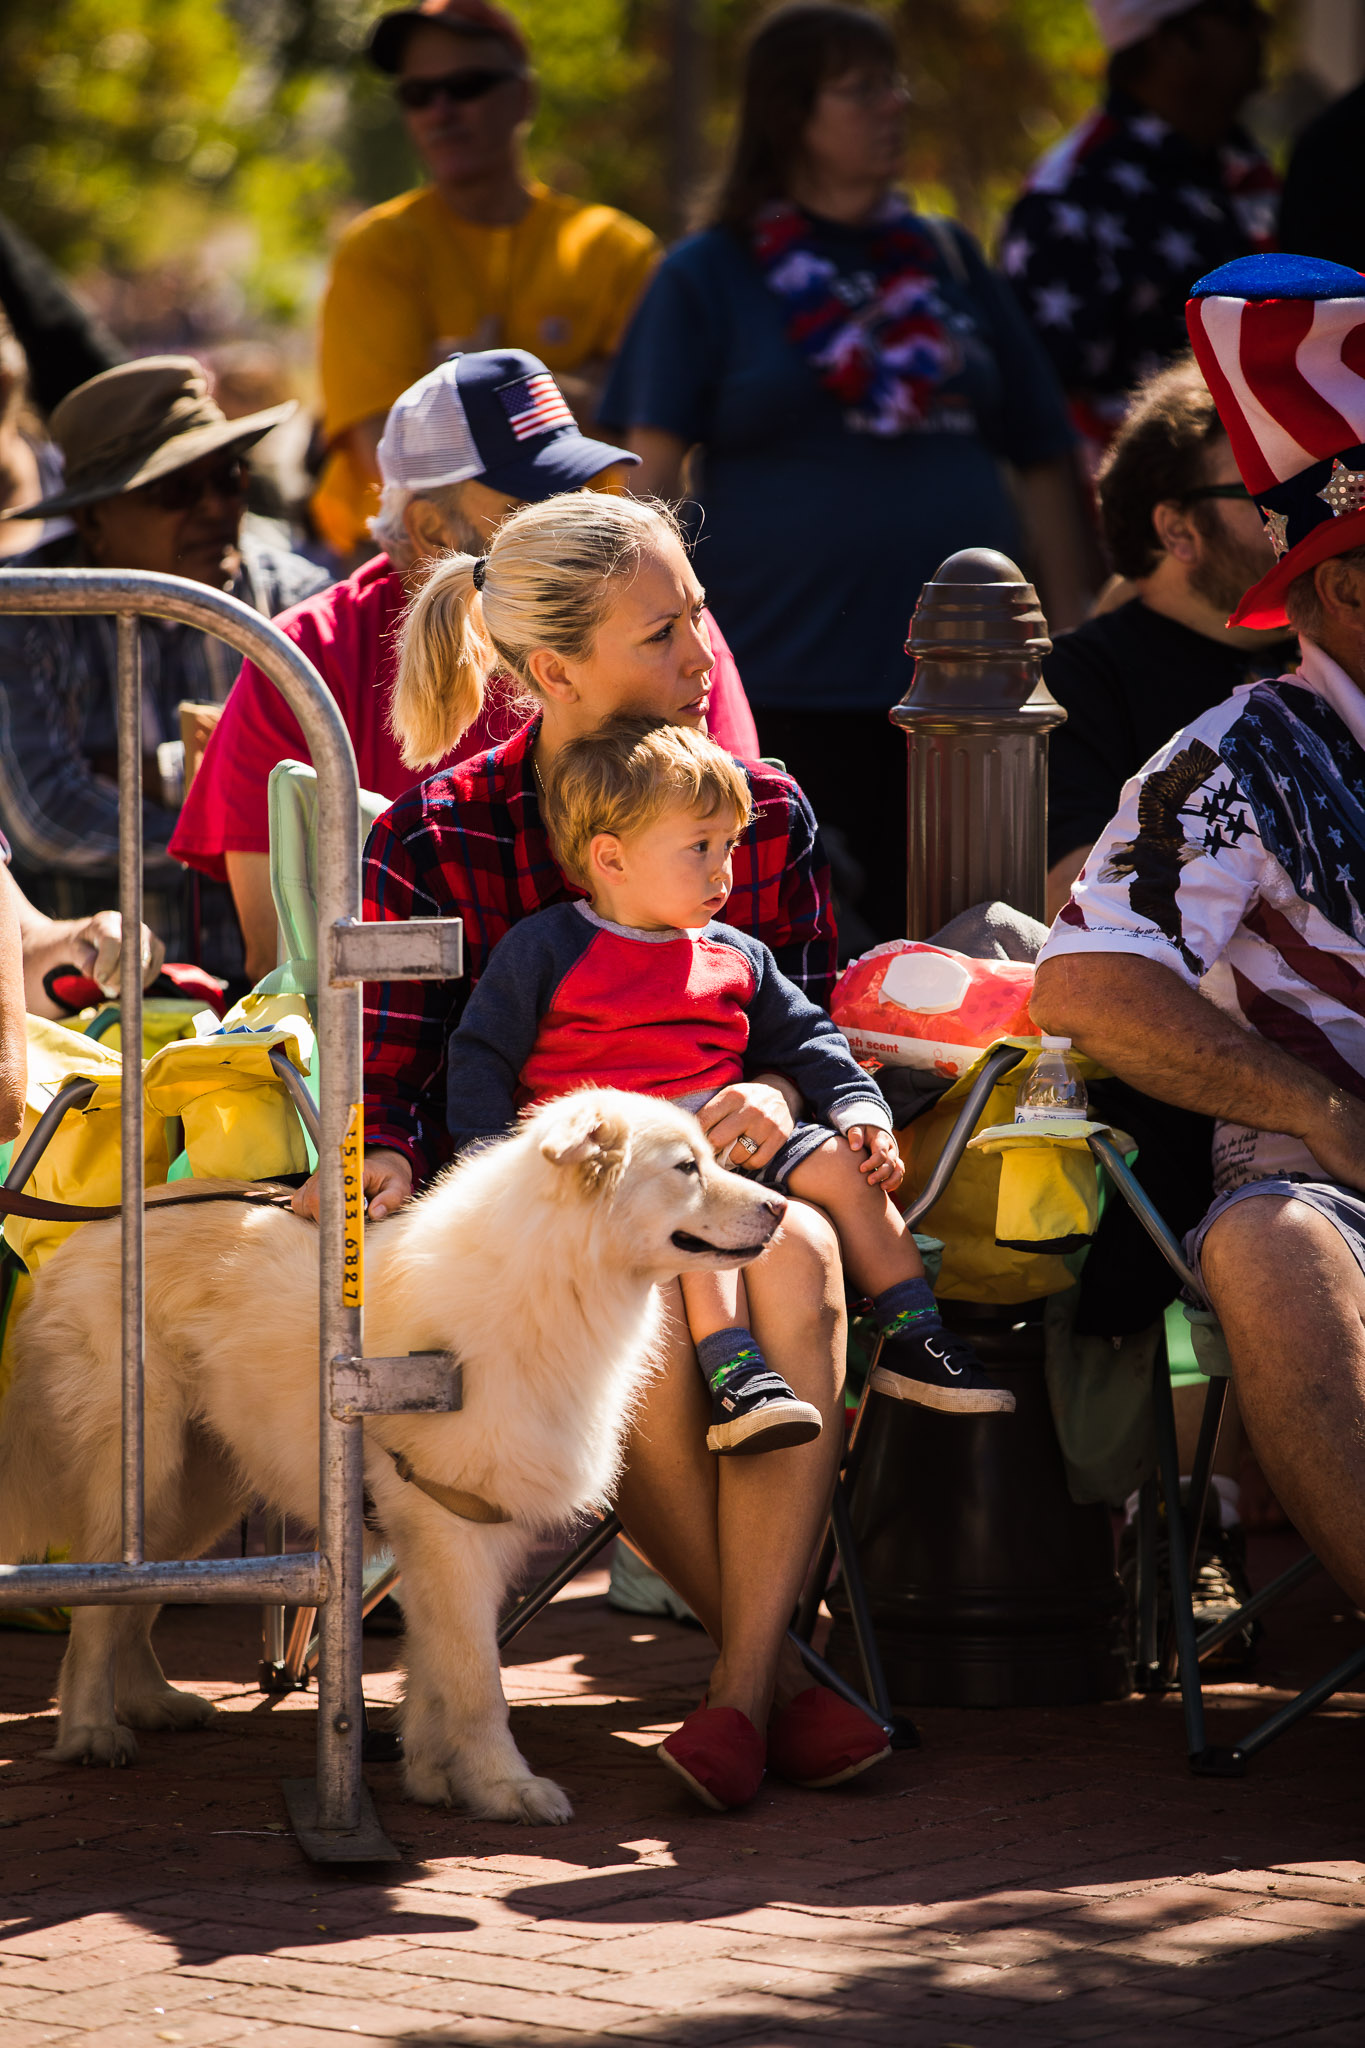 Archer_Inspired_Photography_Morgan_Hill_California_4th_of_july_parade-49.jpg